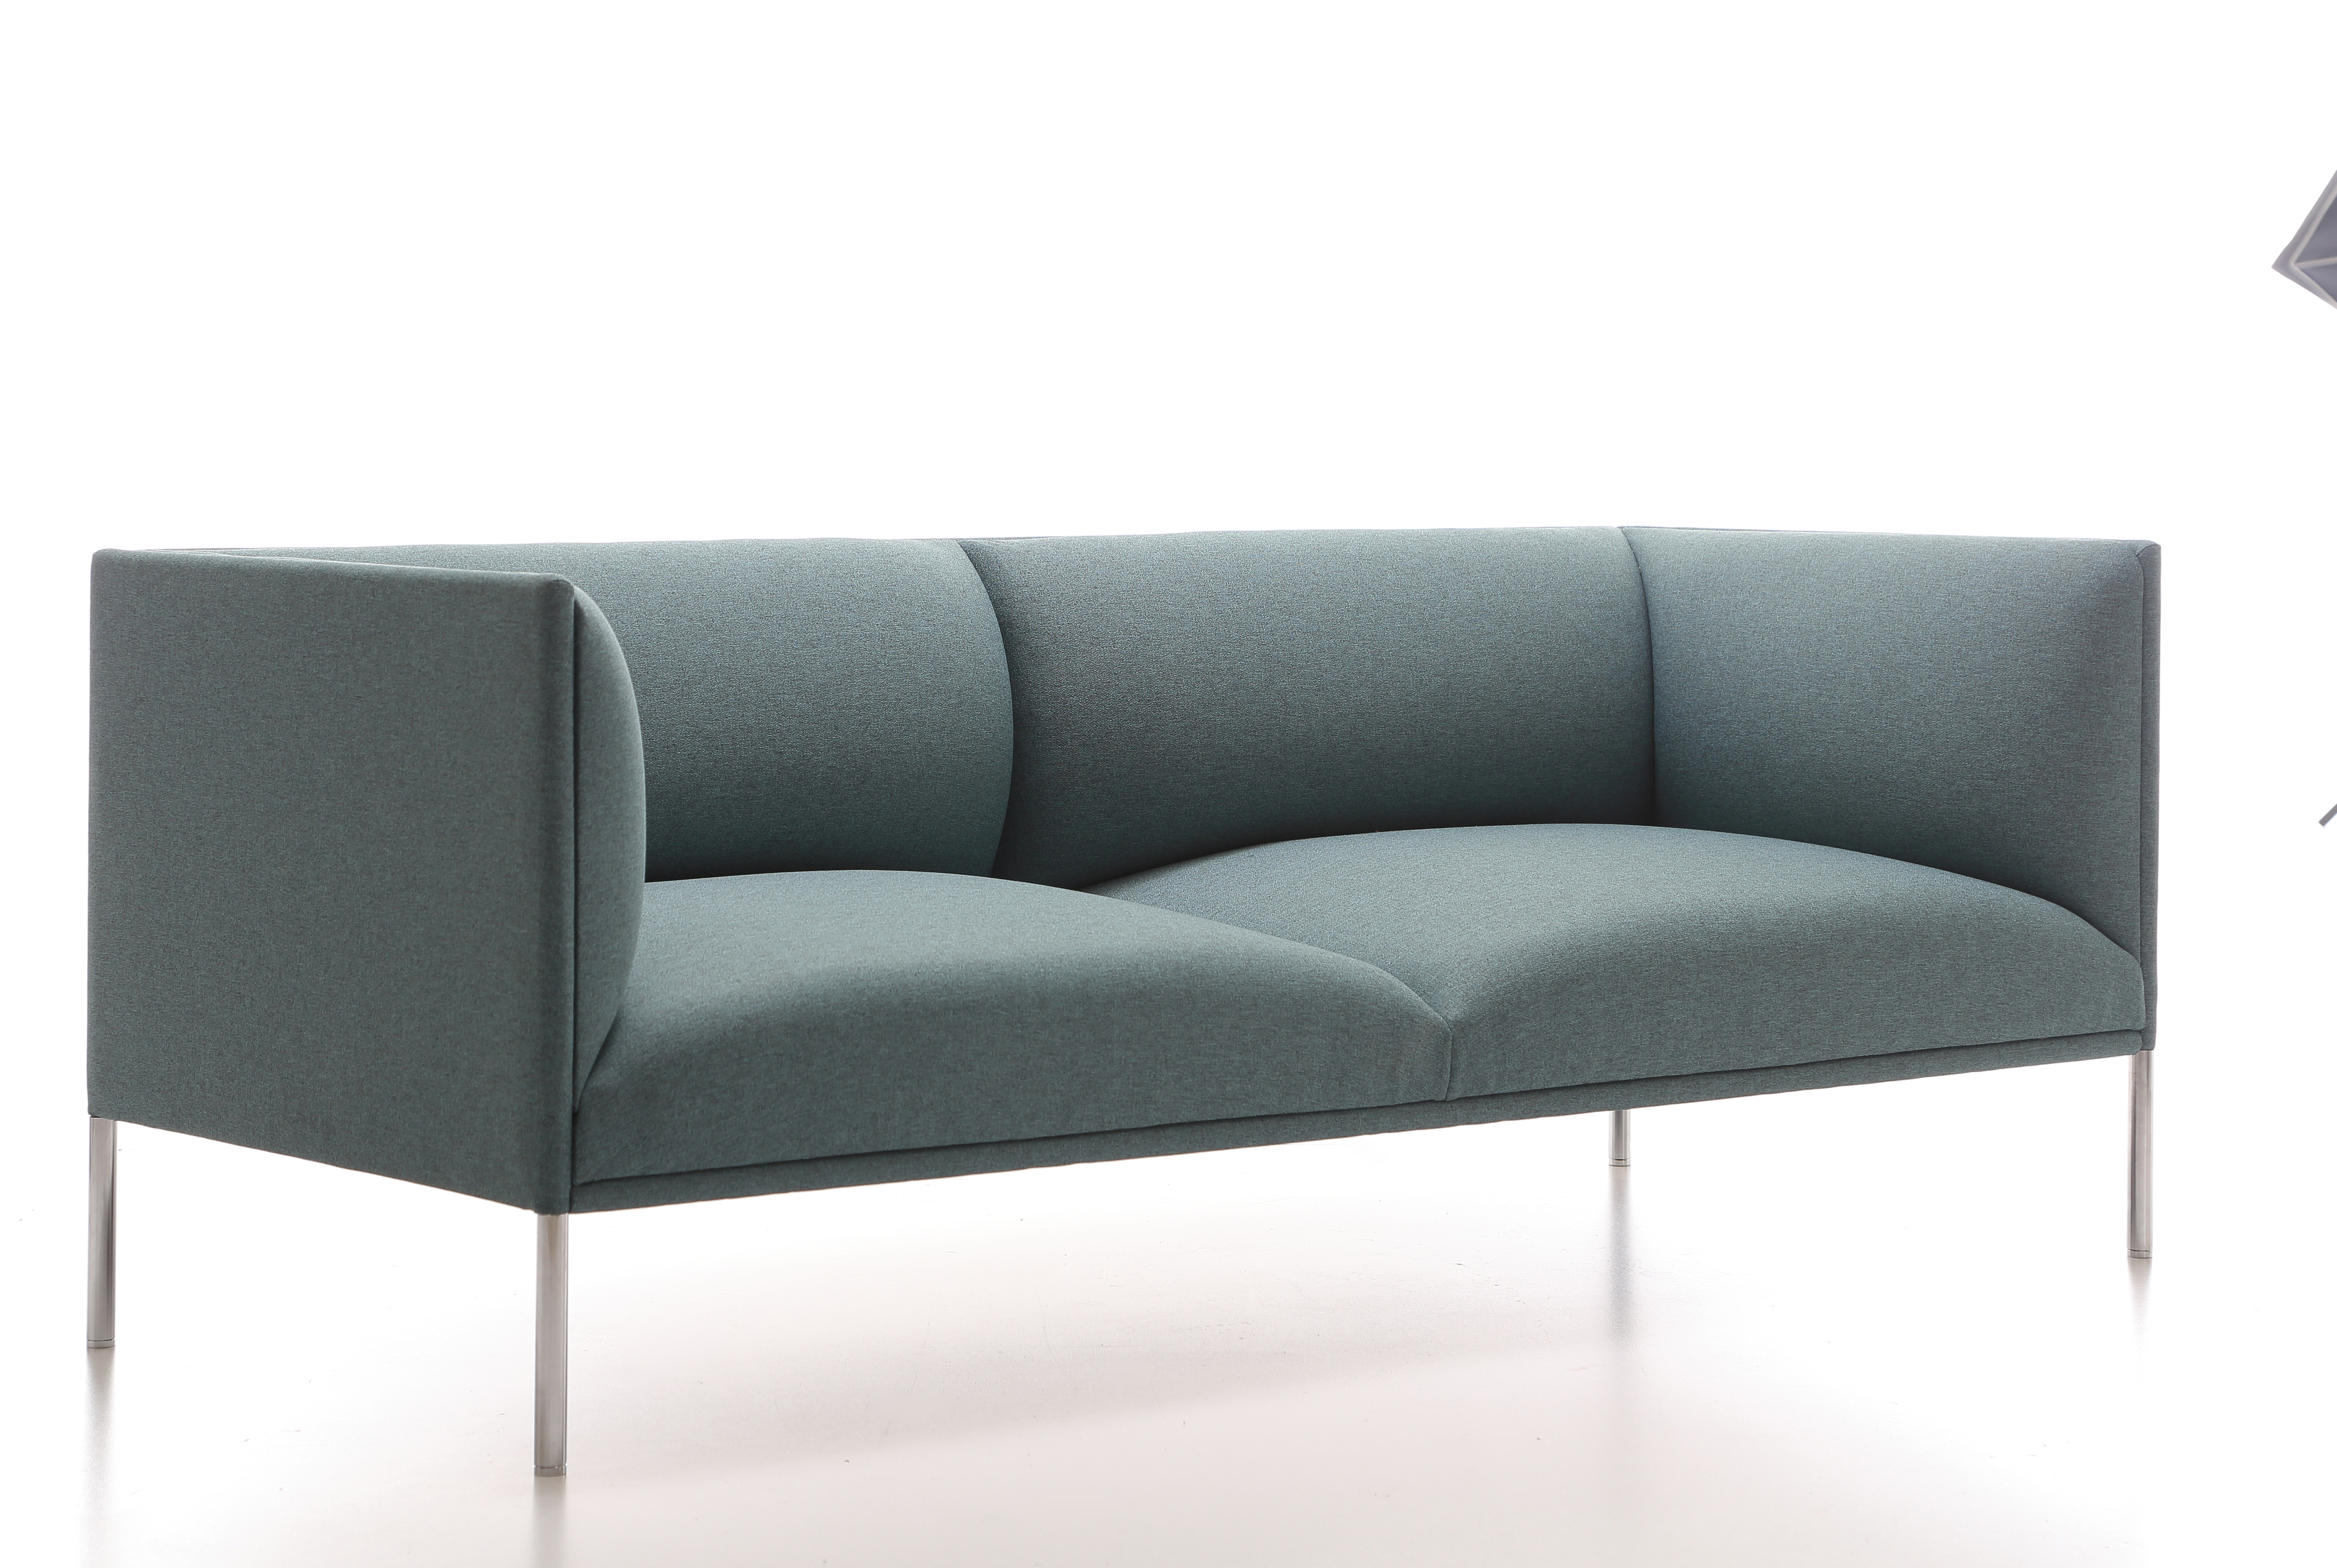 city sofa soft seating techo office furniture fy chair